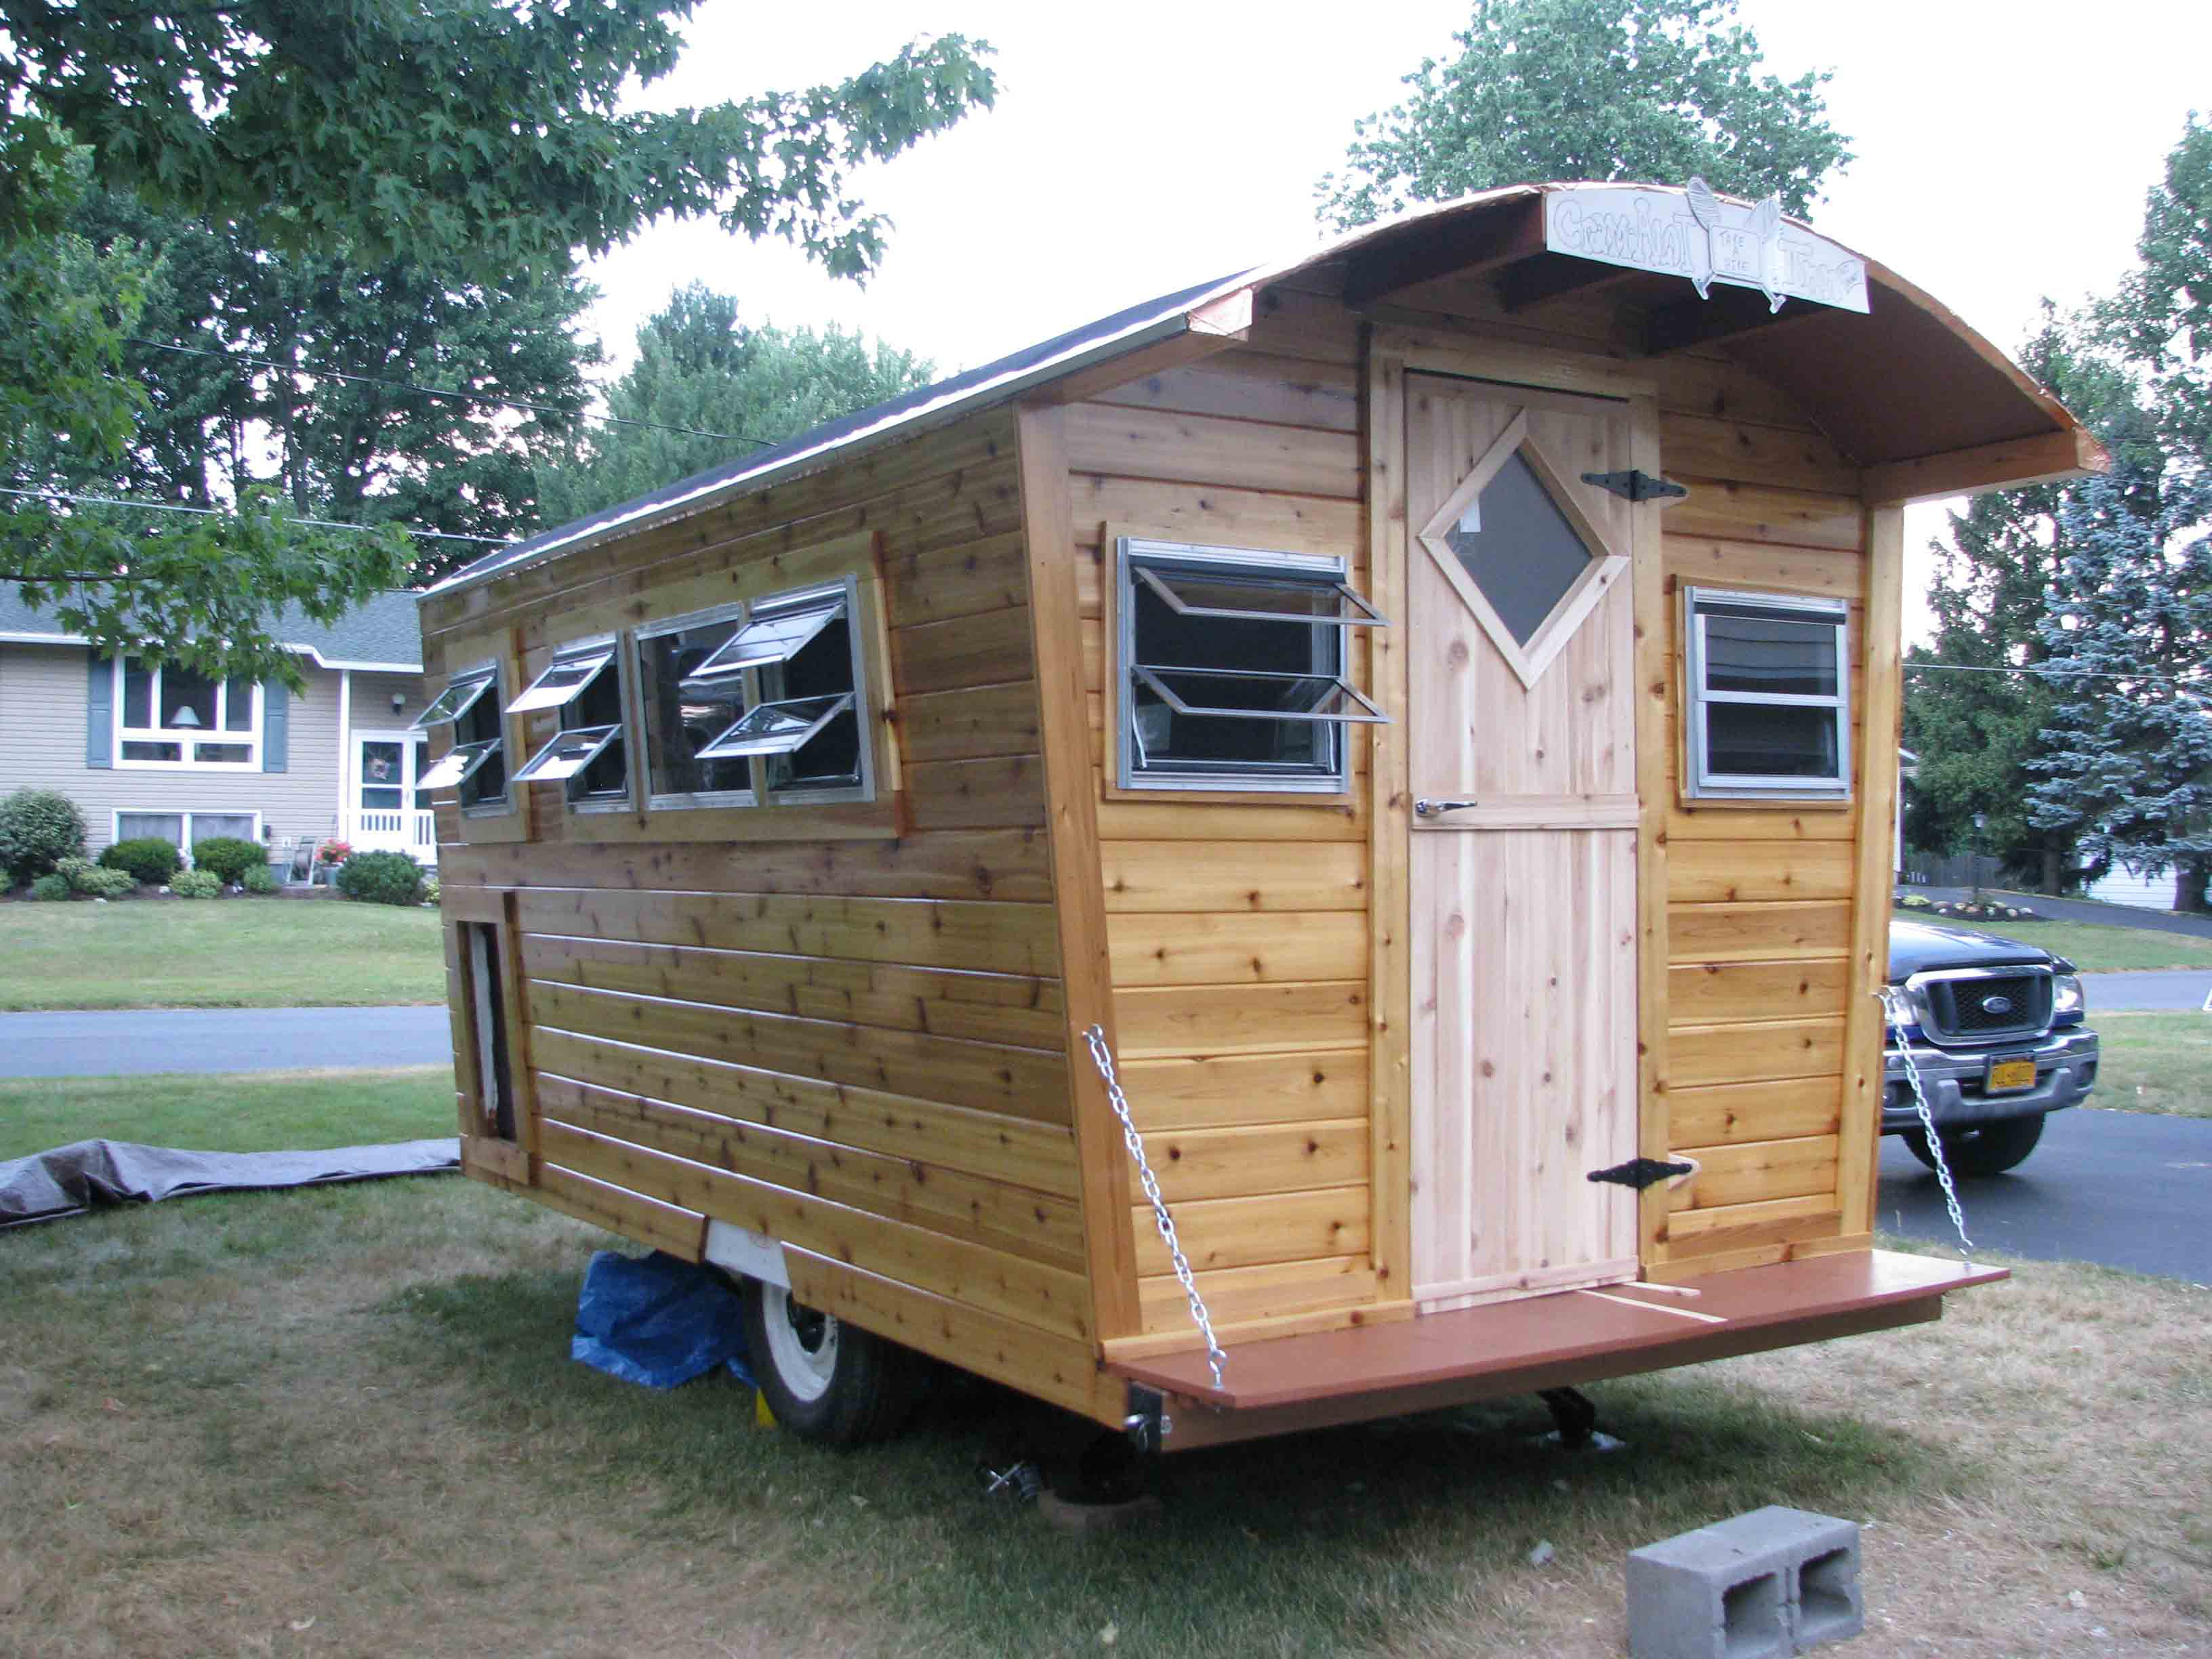 Build your own gypsy wagon joy studio design gallery for Build your own building